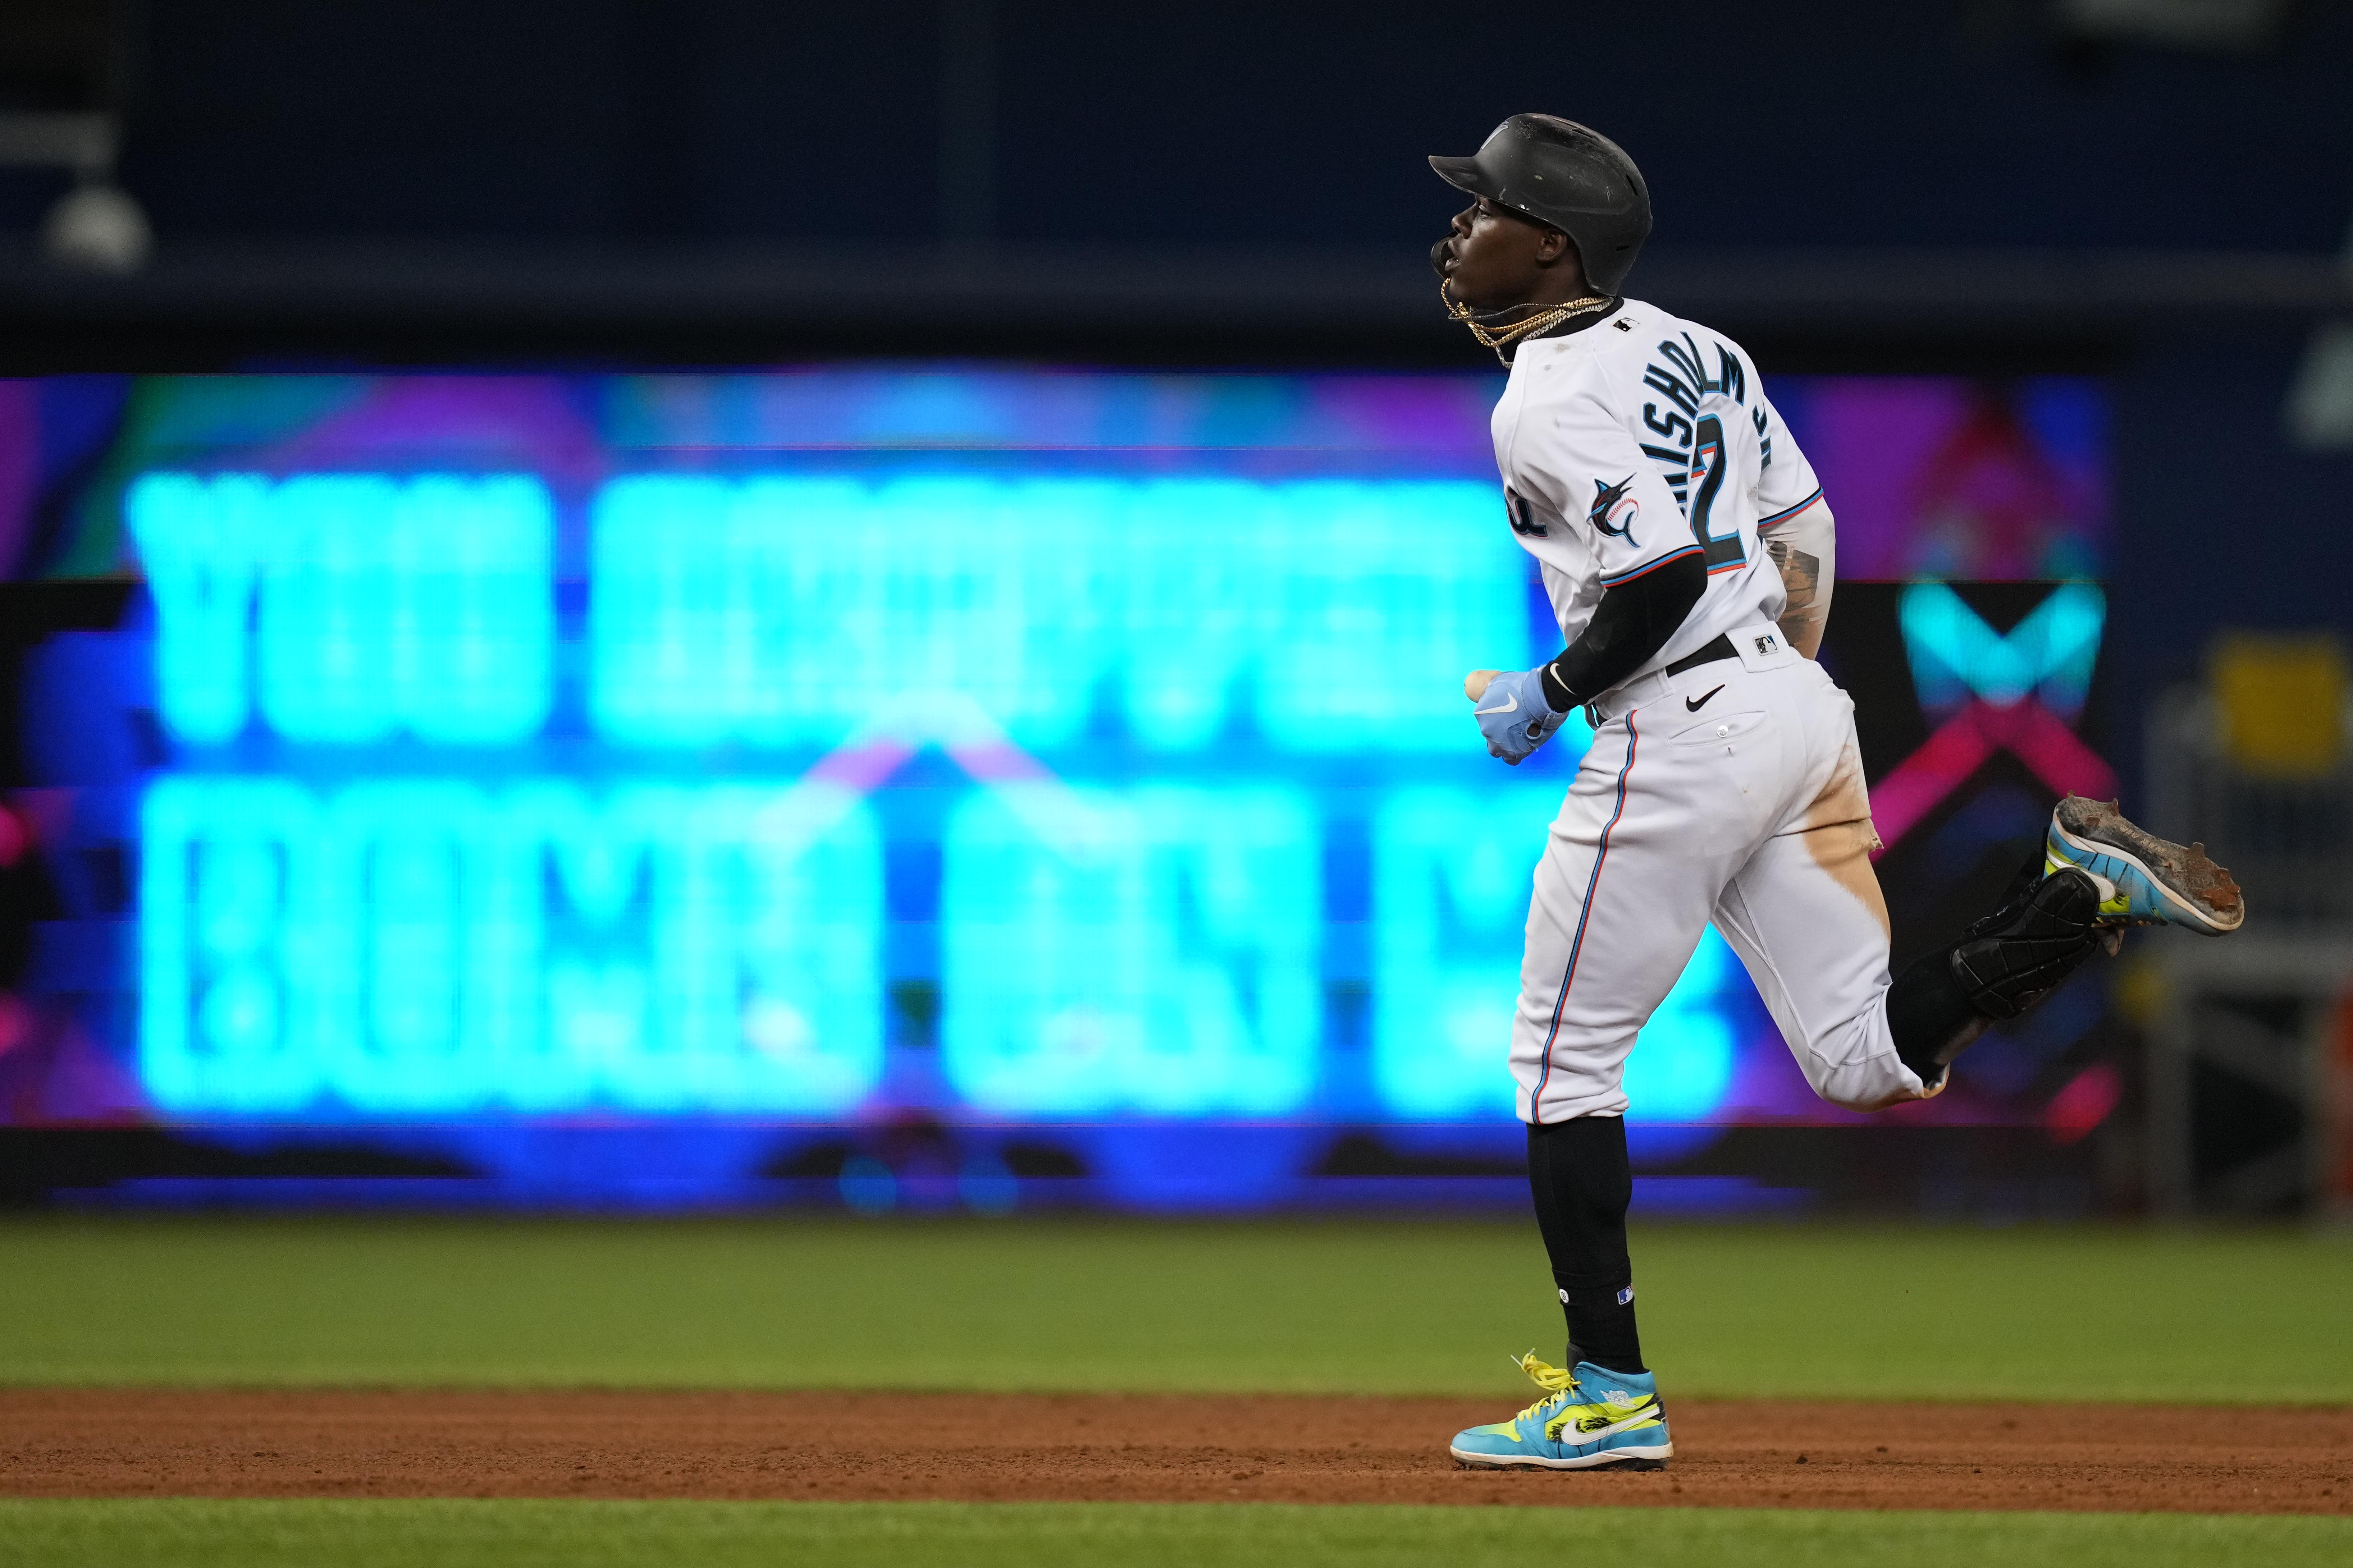 Miami Marlins second baseman Jazz Chisholm Jr. (2) rounds the bases after hitting a solo homerun in the 8th inning against the New York Mets at loanDepot park